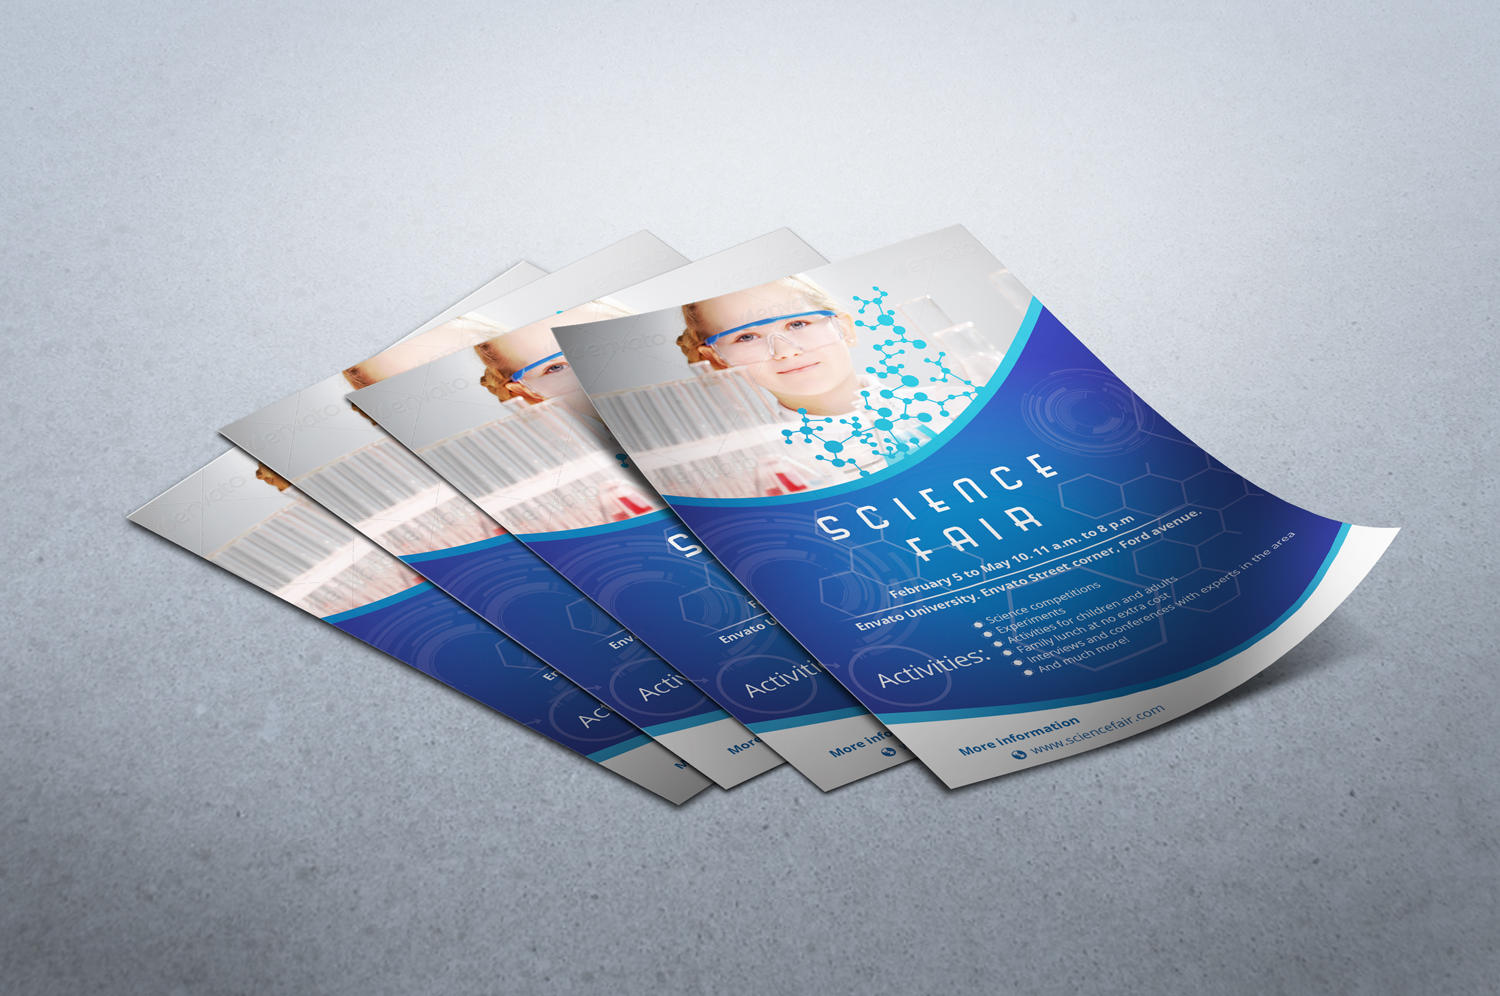 Flyer Template Design Professional by gassh - 36067